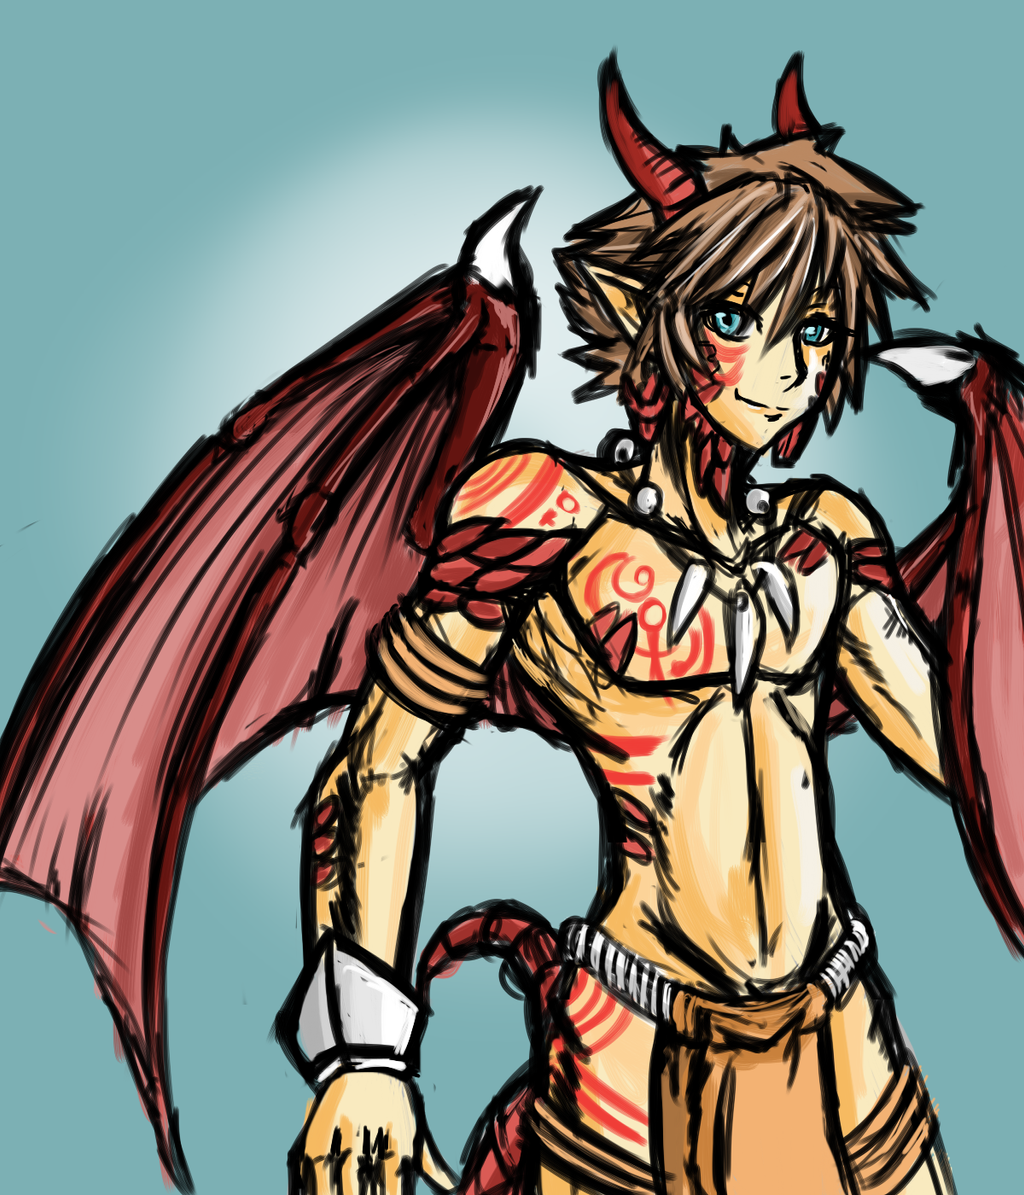 Half dragon half boy by endless warr on deviantart - Anime boy dragon ...